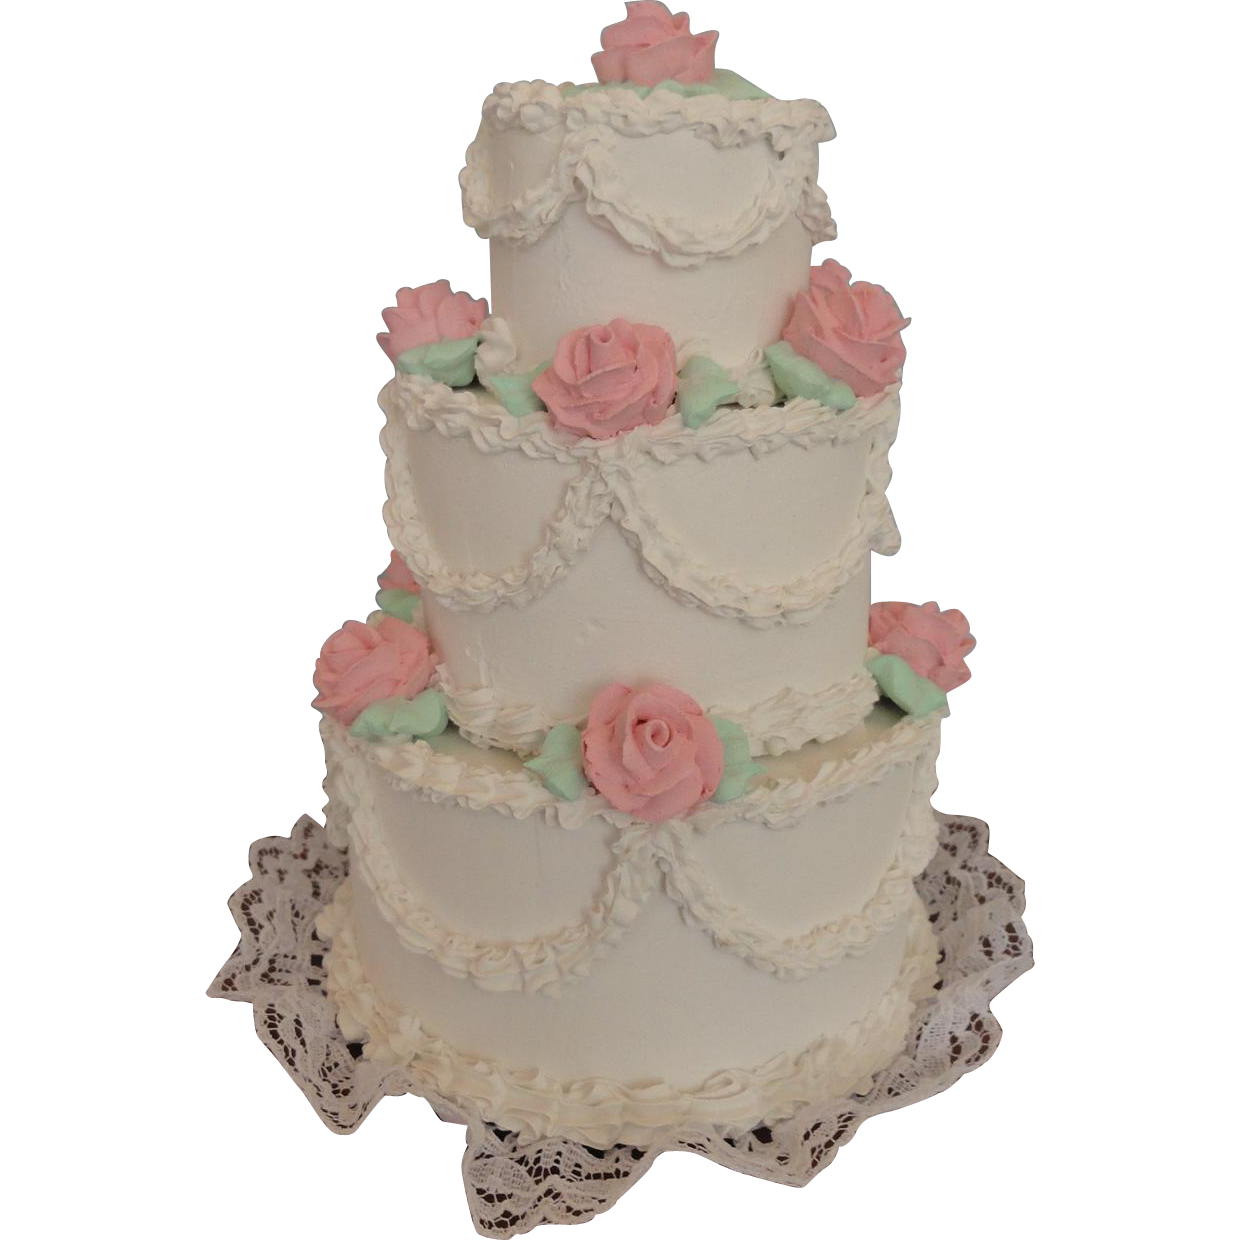 Gorgeous Wedding Cake 6 1 2 Inches Tall From Auntpatsyscottage On Ruby Lane